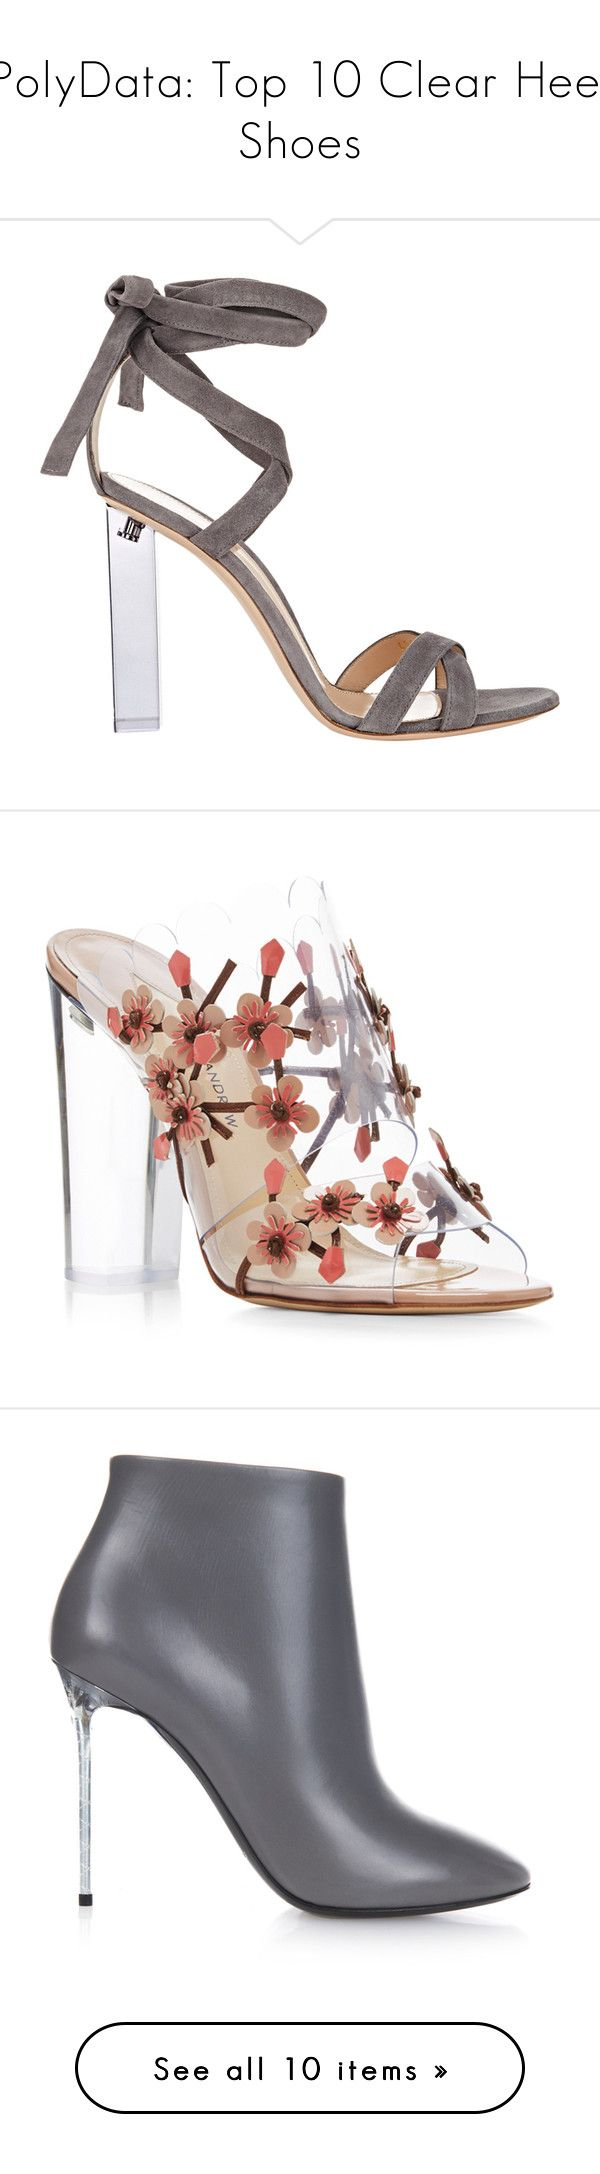 """""""PolyData: Top 10 Clear Heel Shoes"""" by polyvore ❤ liked on Polyvore featuring clearheels, polydata, shoes, sandals, heels, chaussures, high heels, colorless, grey shoes and grey heel sandals"""